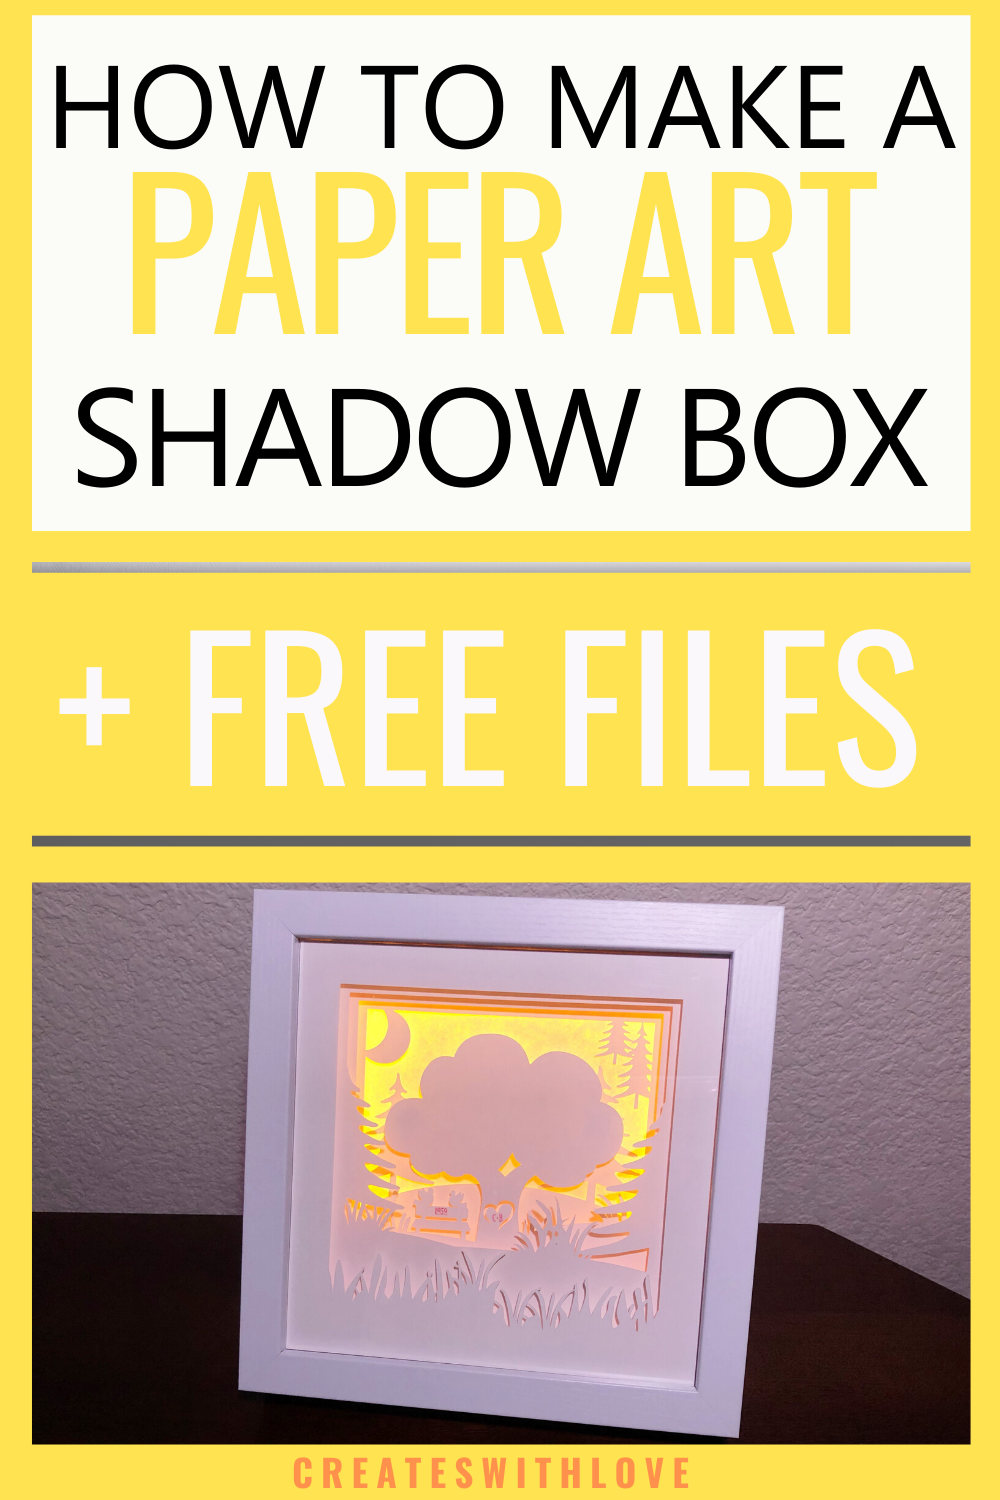 A layered Shadow Box Paper Art Project all lite up with LED Light strips and white card stock.